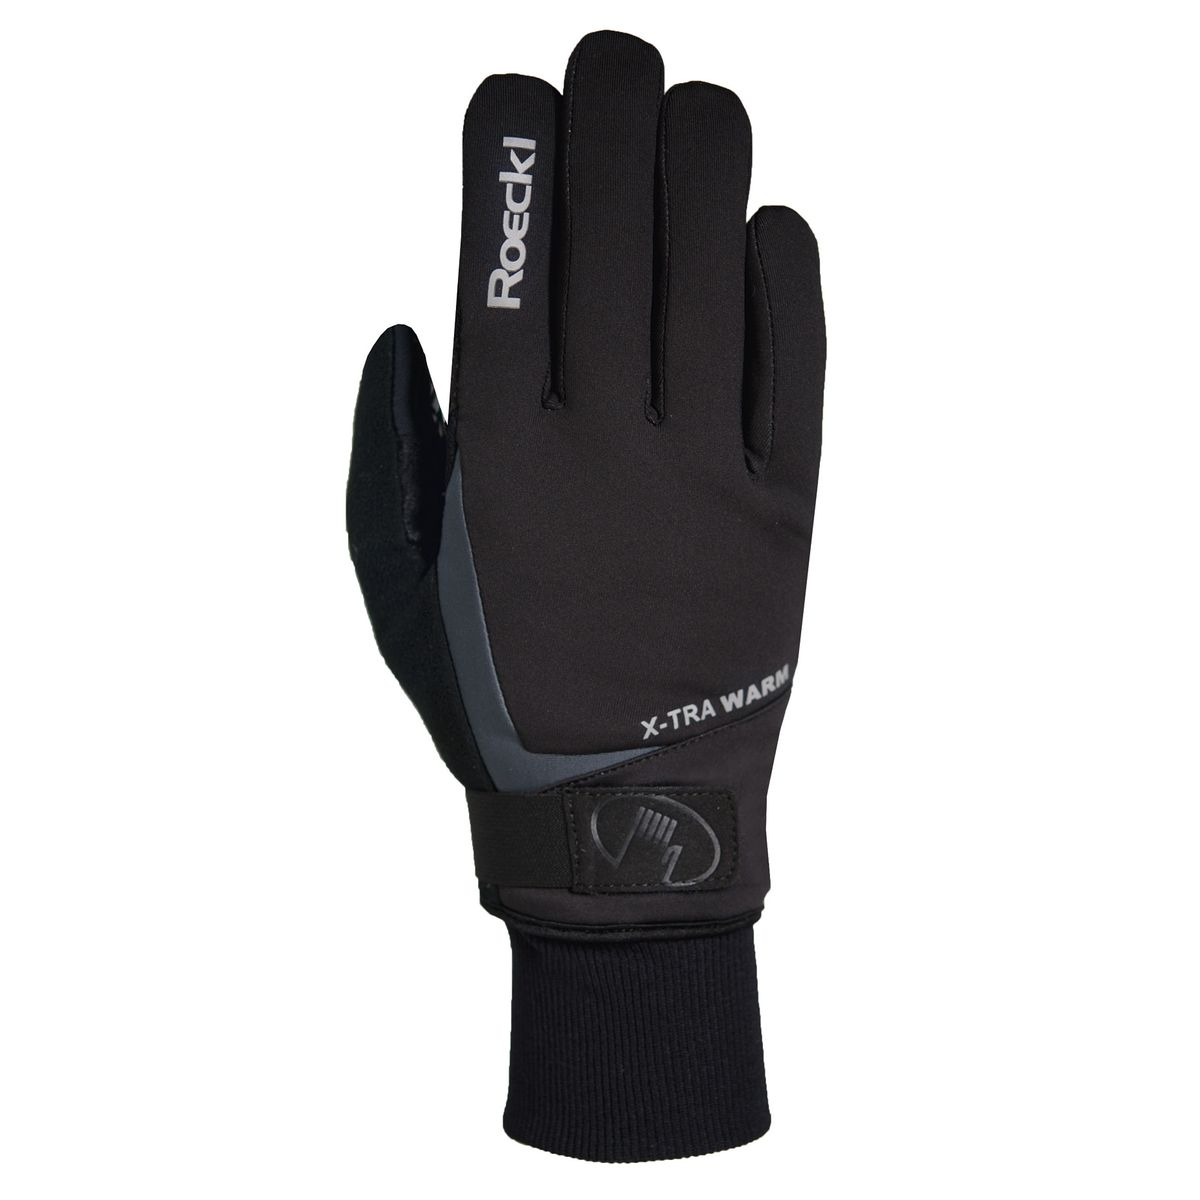 Verbier winter gloves